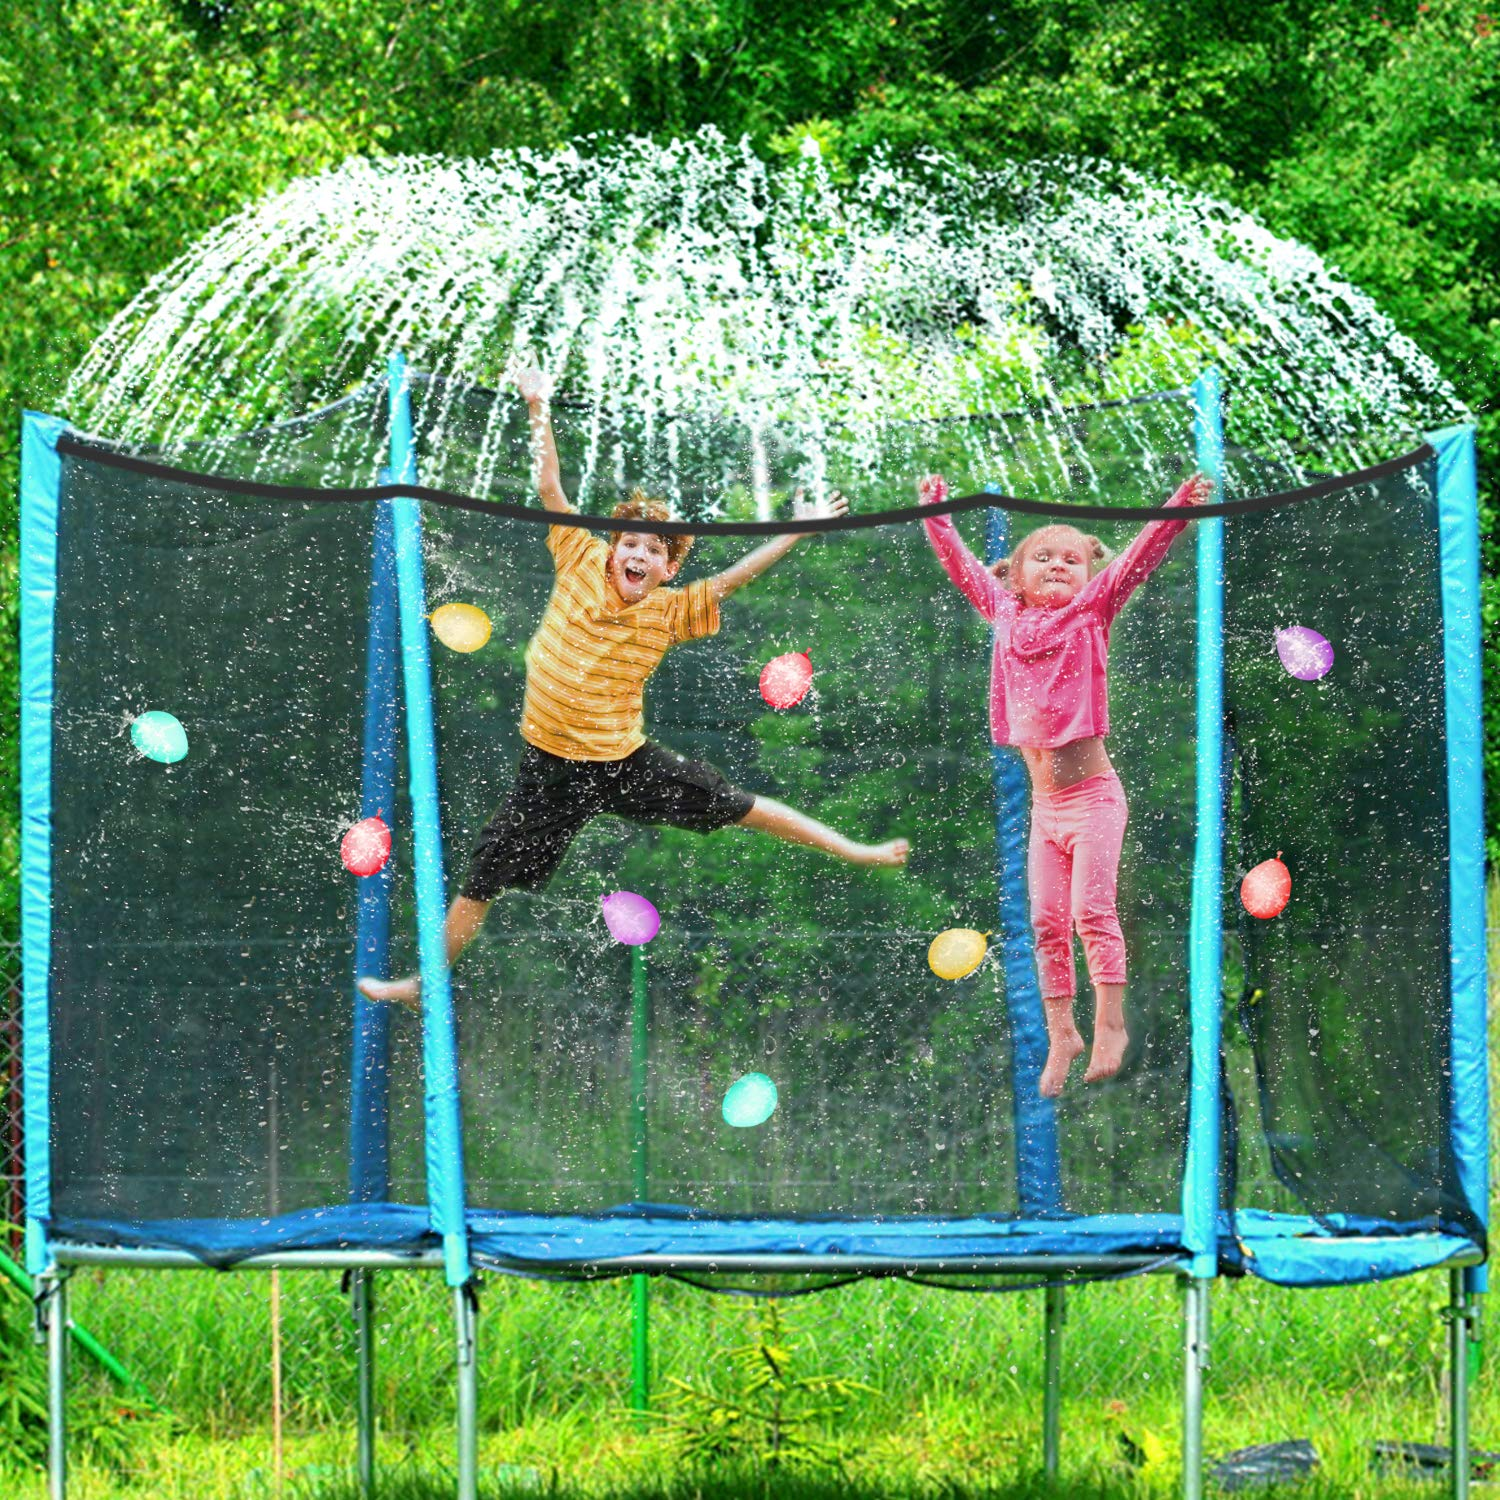 Trampoline Sprinkler 39FT Waterpark Outdoor Water Sprinklers Toy Accessories for Kids Fun Summer Water Park Backyard Yard Game for Boy Girl Outside Play Activities with 100 Water Balloons, 25 Zip Ties